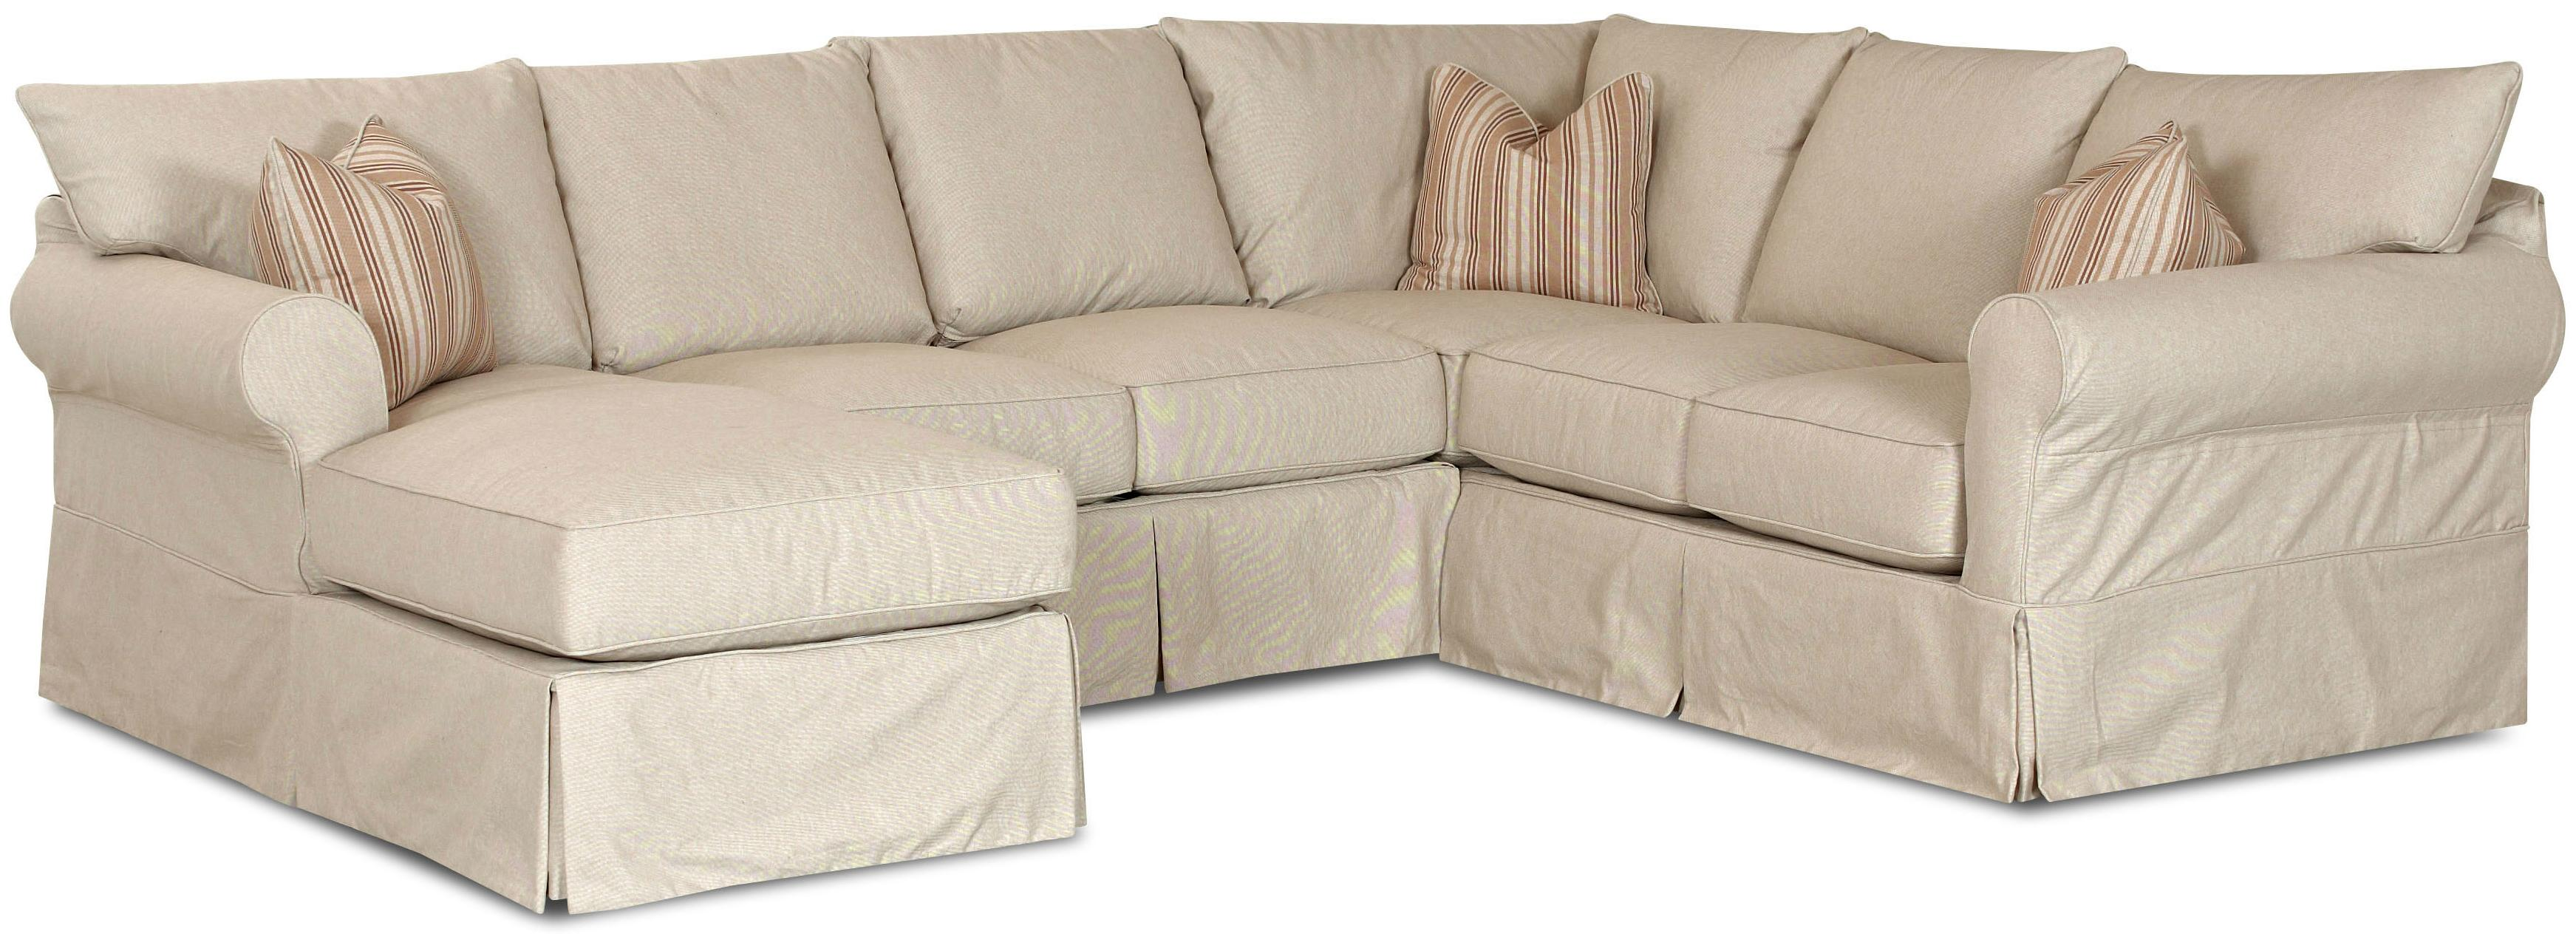 Slip Cover Sectional Sofa With Left Chaise By Klaussner